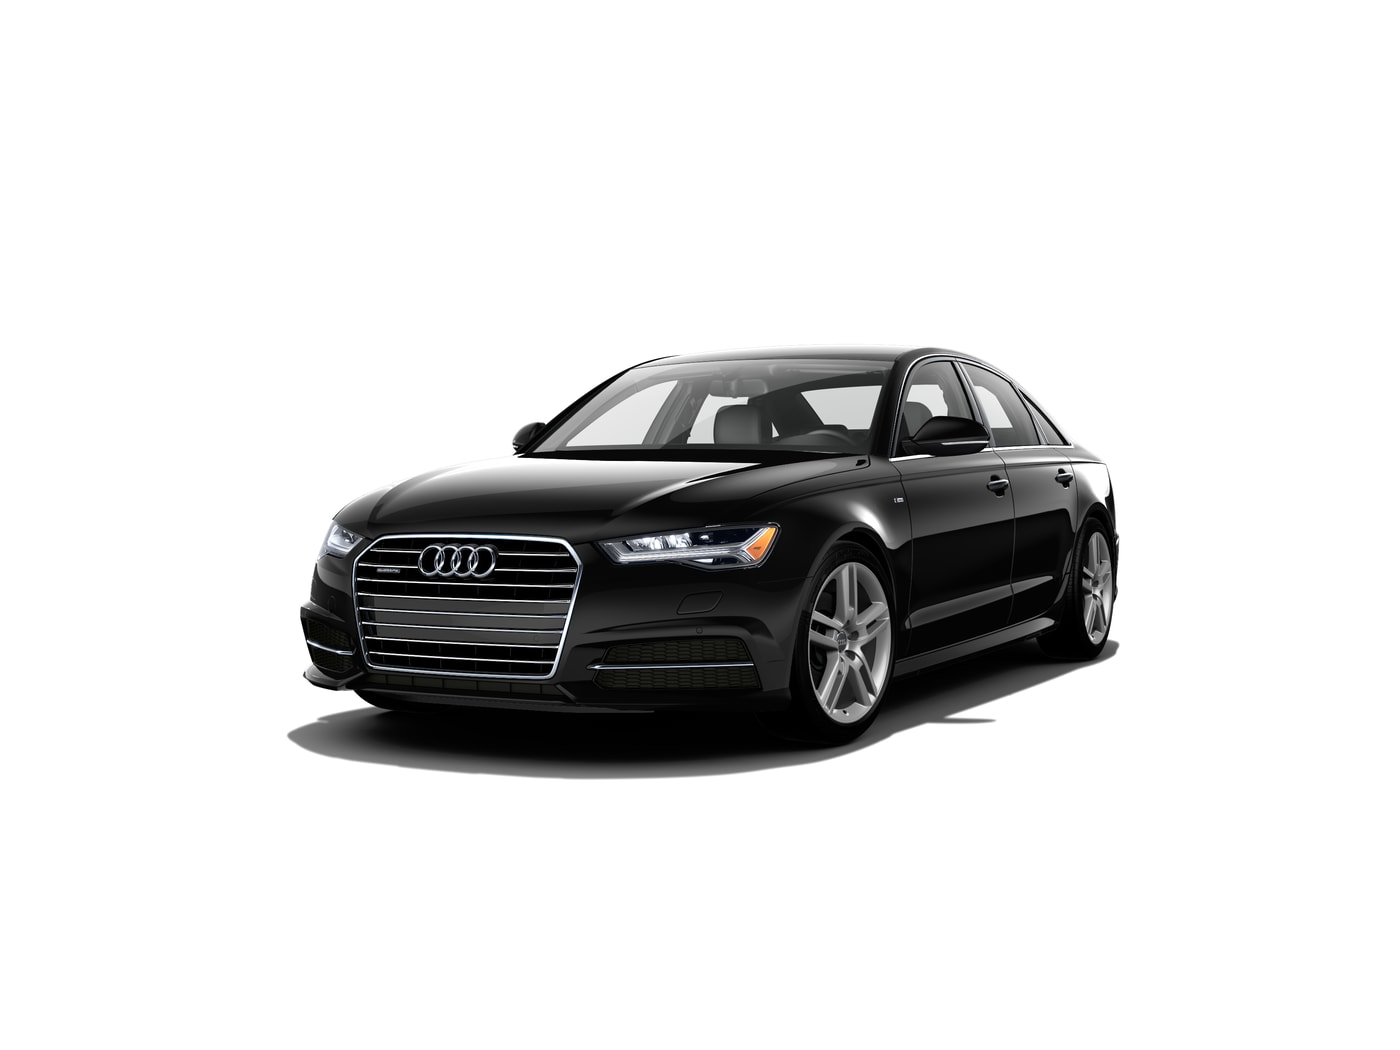 Audi a6 0 60 audi a6 0 60 youtube scxhjd audi a6 0 60 ebook best deal gallery free ebooks and more fandeluxe Gallery